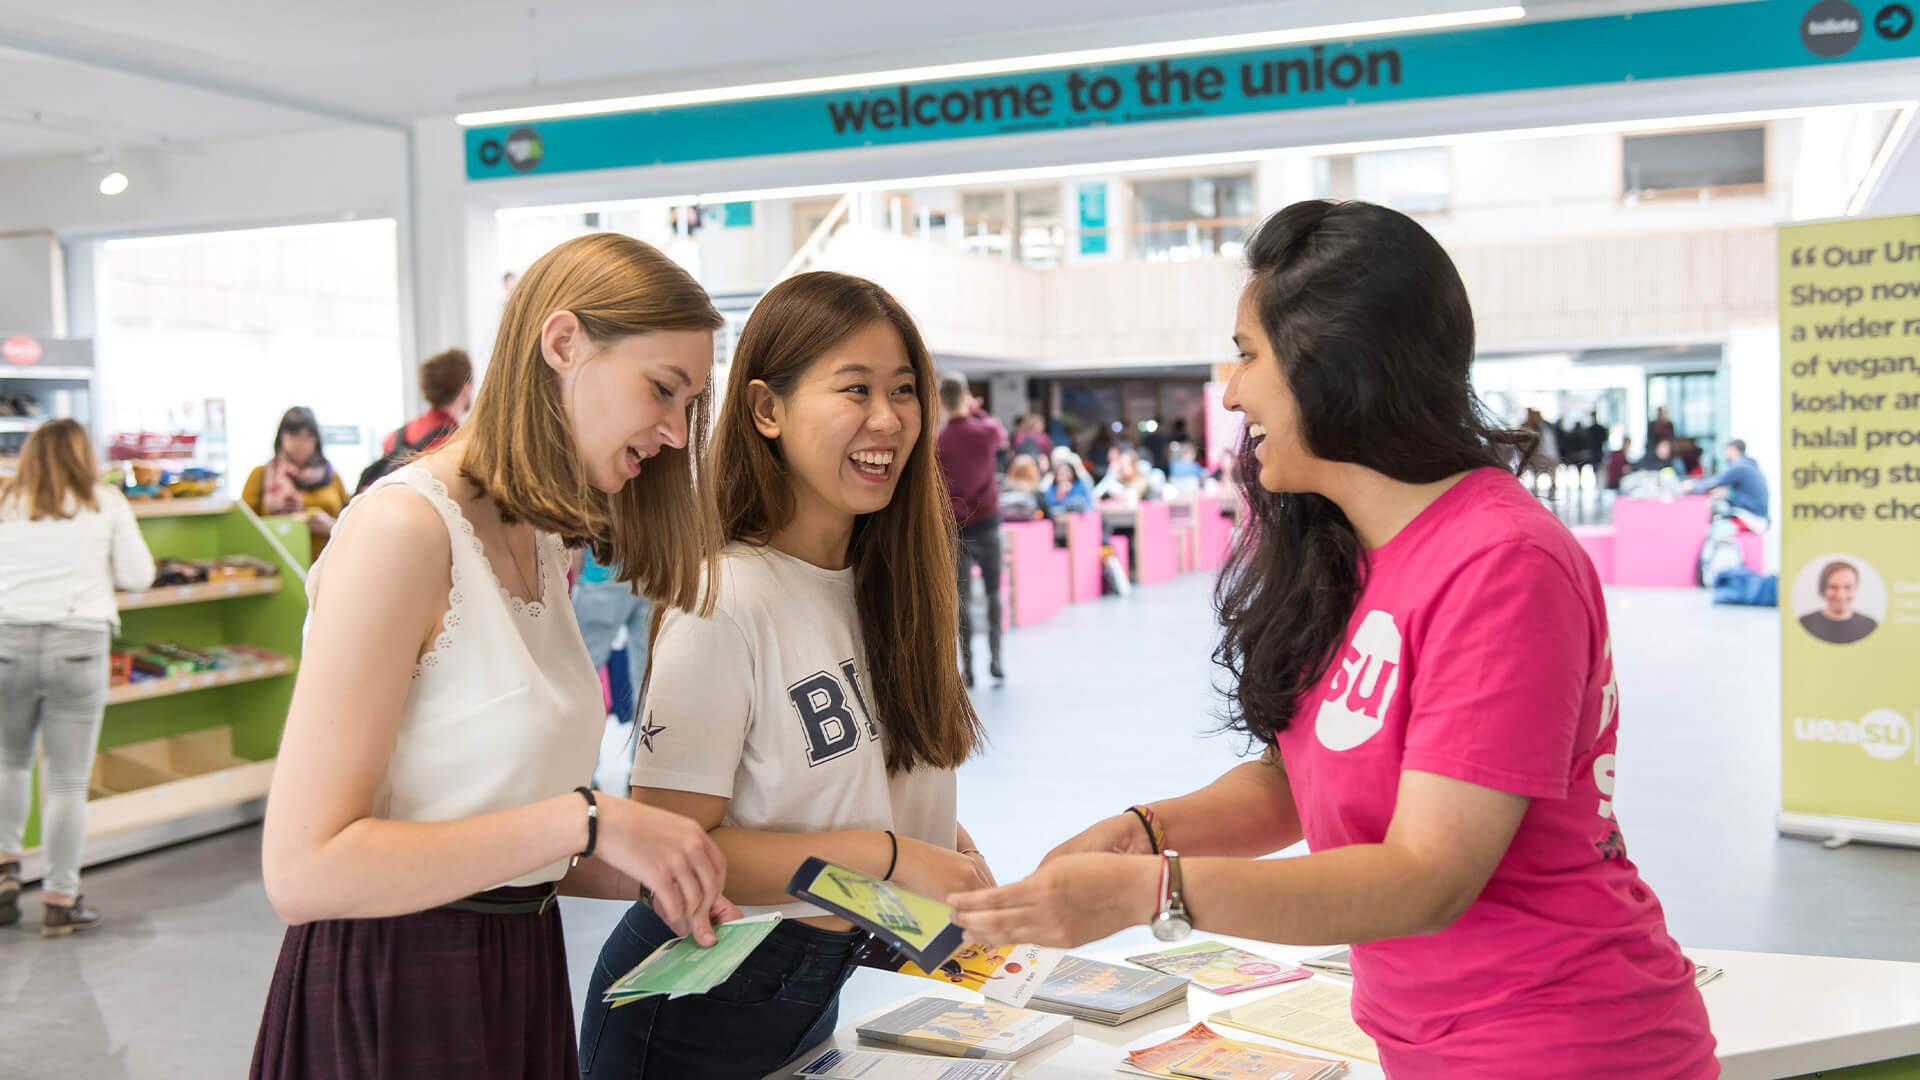 The Students' Union at the University of East Anglia offers academic advice to students